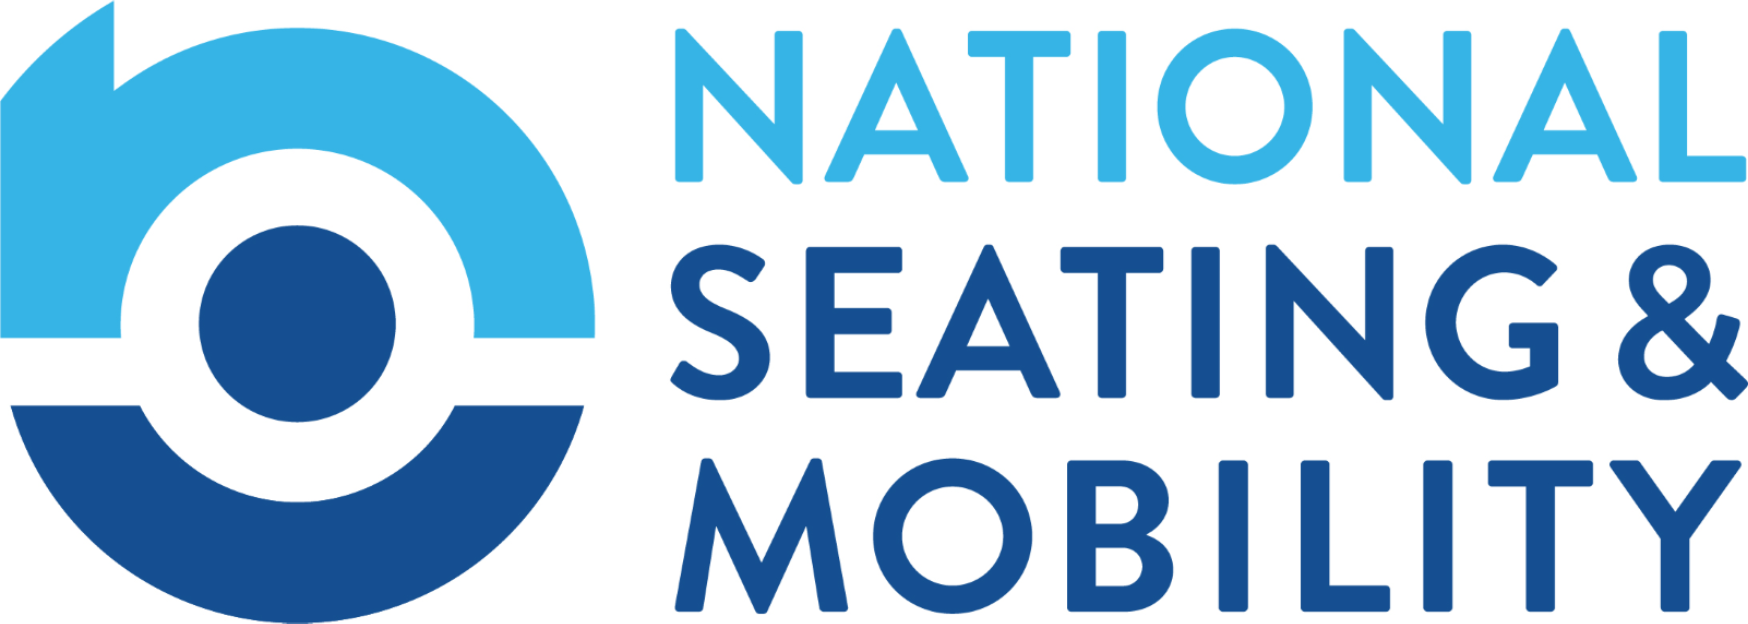 National Seating & Mobility